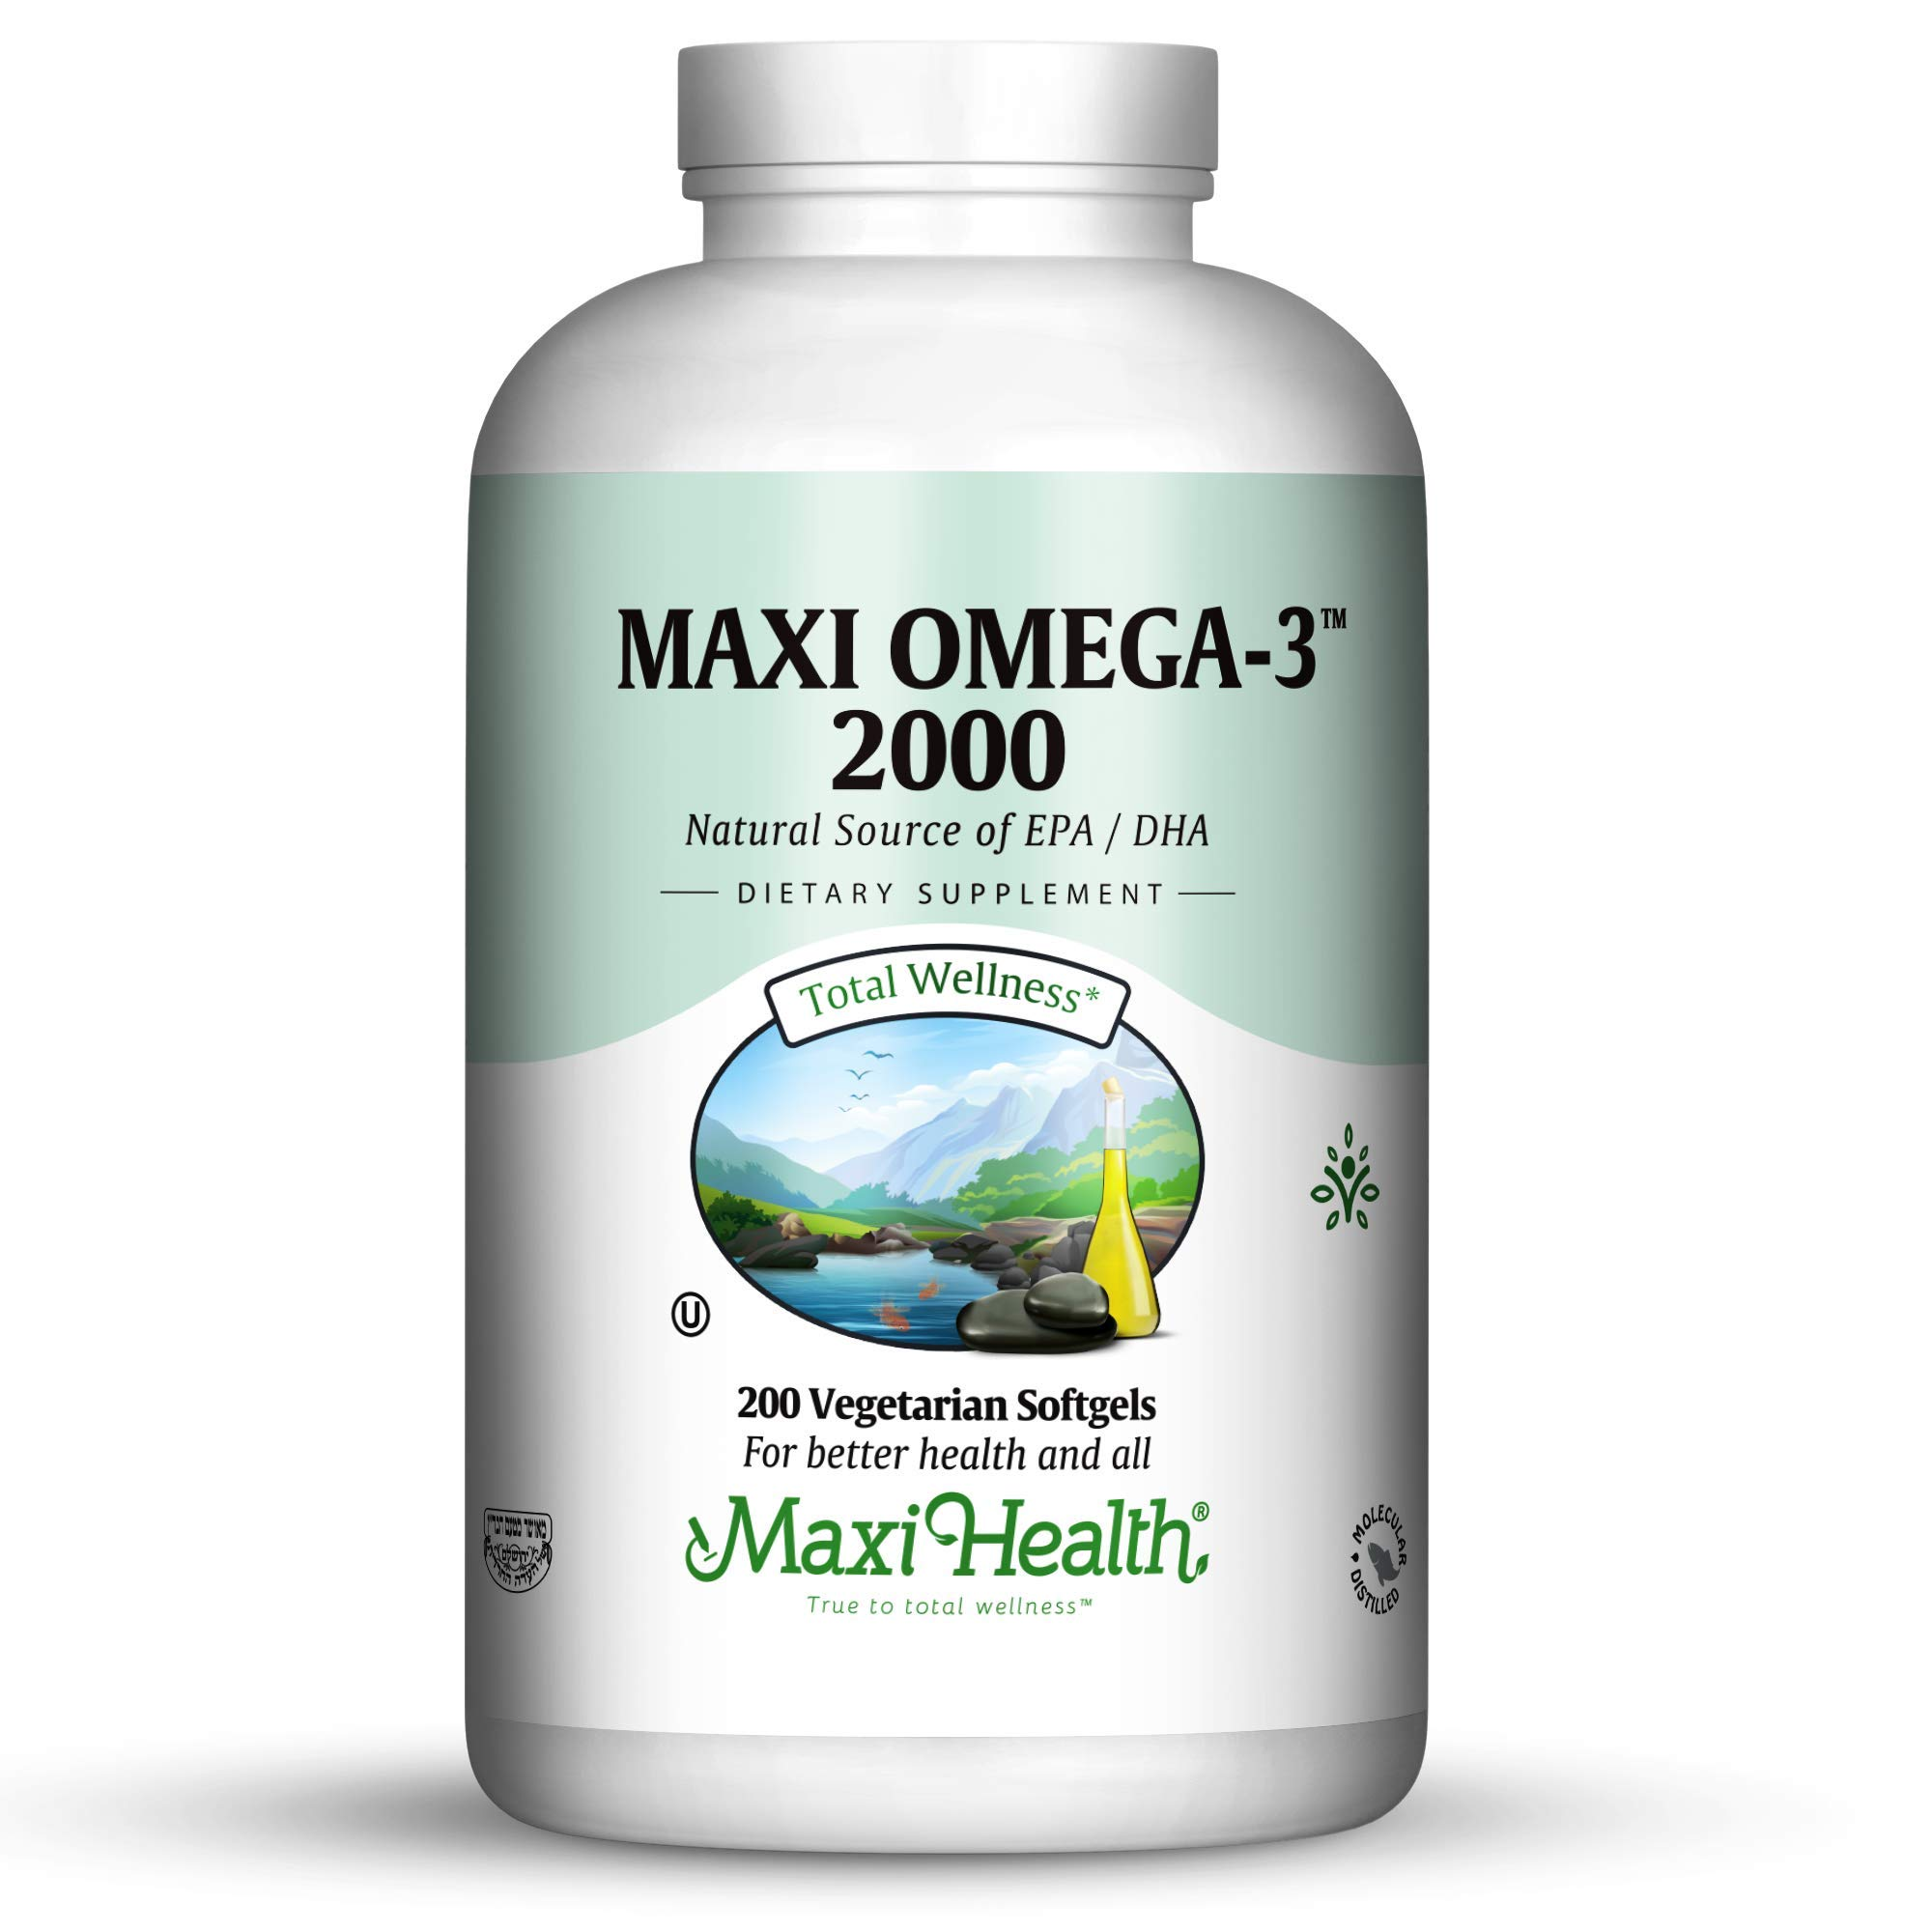 Maxi-Health Fish Oil Omega 3- 2000 mg - Natural Source of DHA/EPA Fatty Acids - Healthy Blood Pressure, Heart and Immune Support - 200 Vegetarian Softgel Capsules - Kosher Supplement